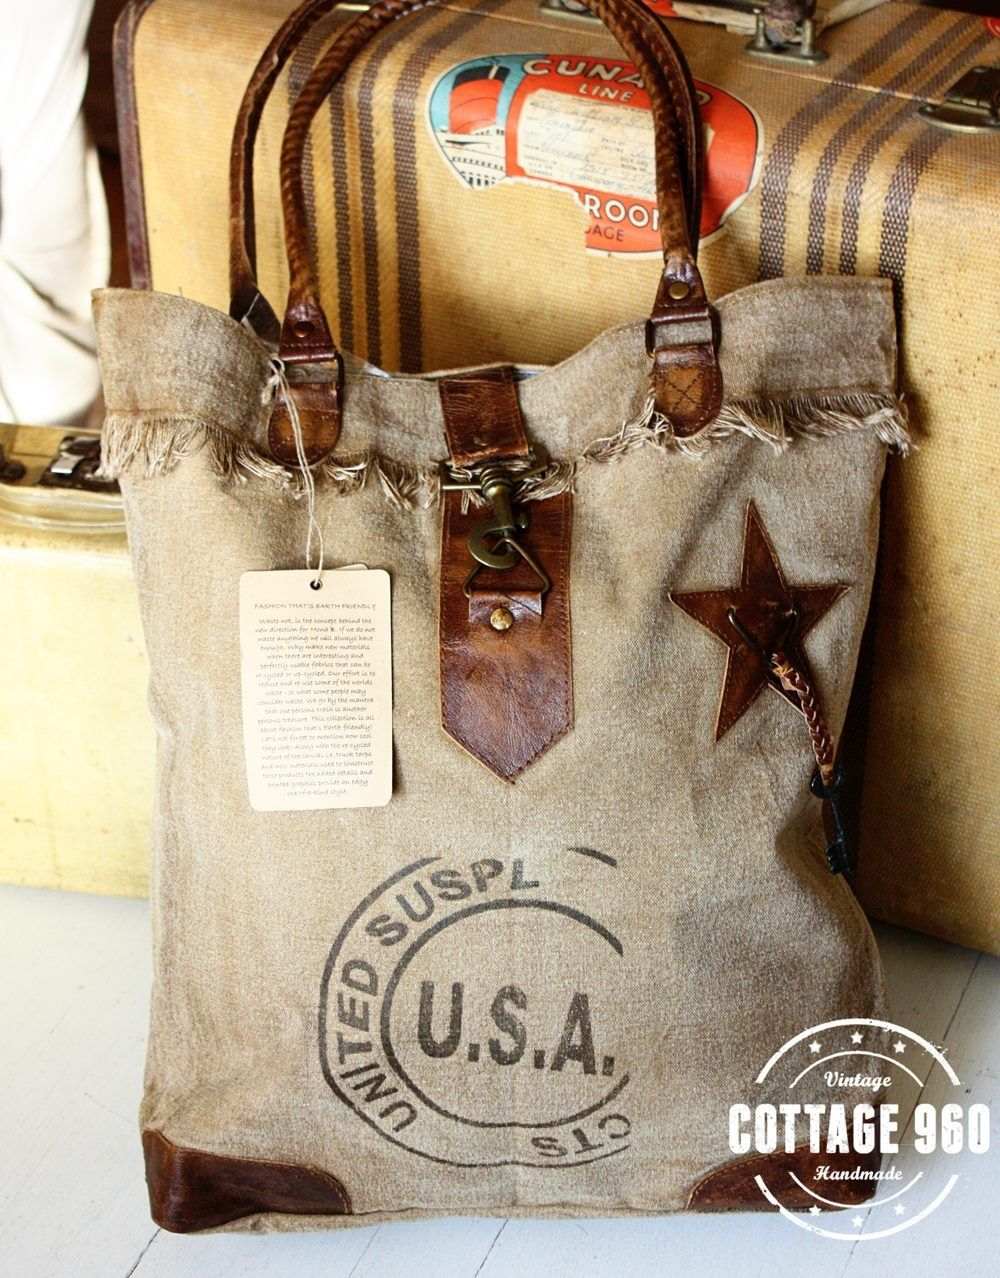 Recycled rice bag purse - Vintage Inspired Bags Made From Recycled Canvas With Leather Trim Now Available At Cottage 960